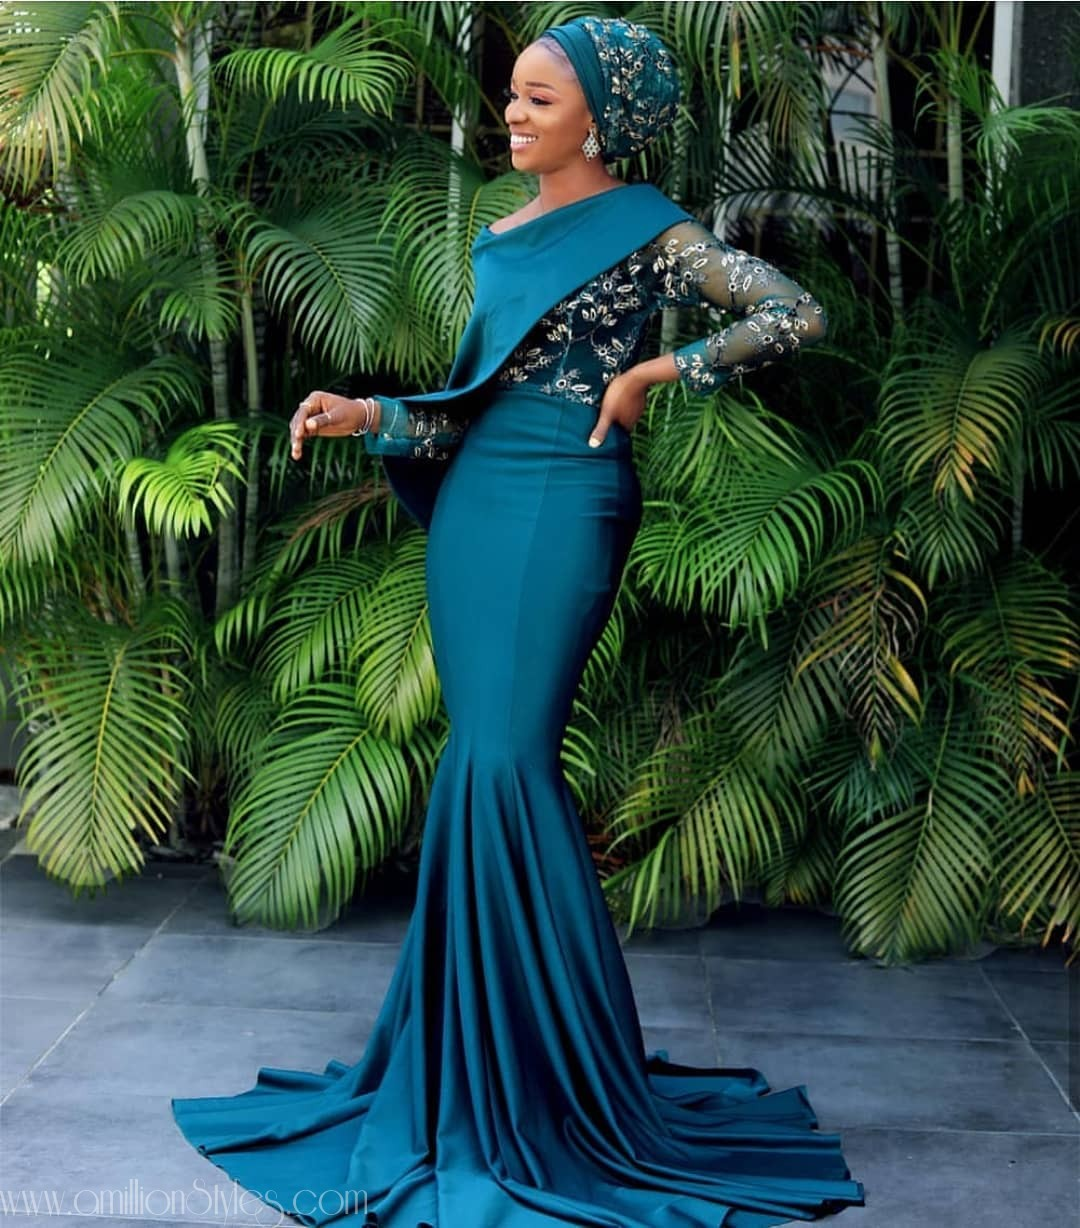 Latest Lace Asoebi Styles Volume 26 auto draft BEAUTIES! GIVE THEM HOT-HOT WITH THESE ASO EBI STYLES THIS WEEKEND asoebi Bella  houseofkhad amillionstyles